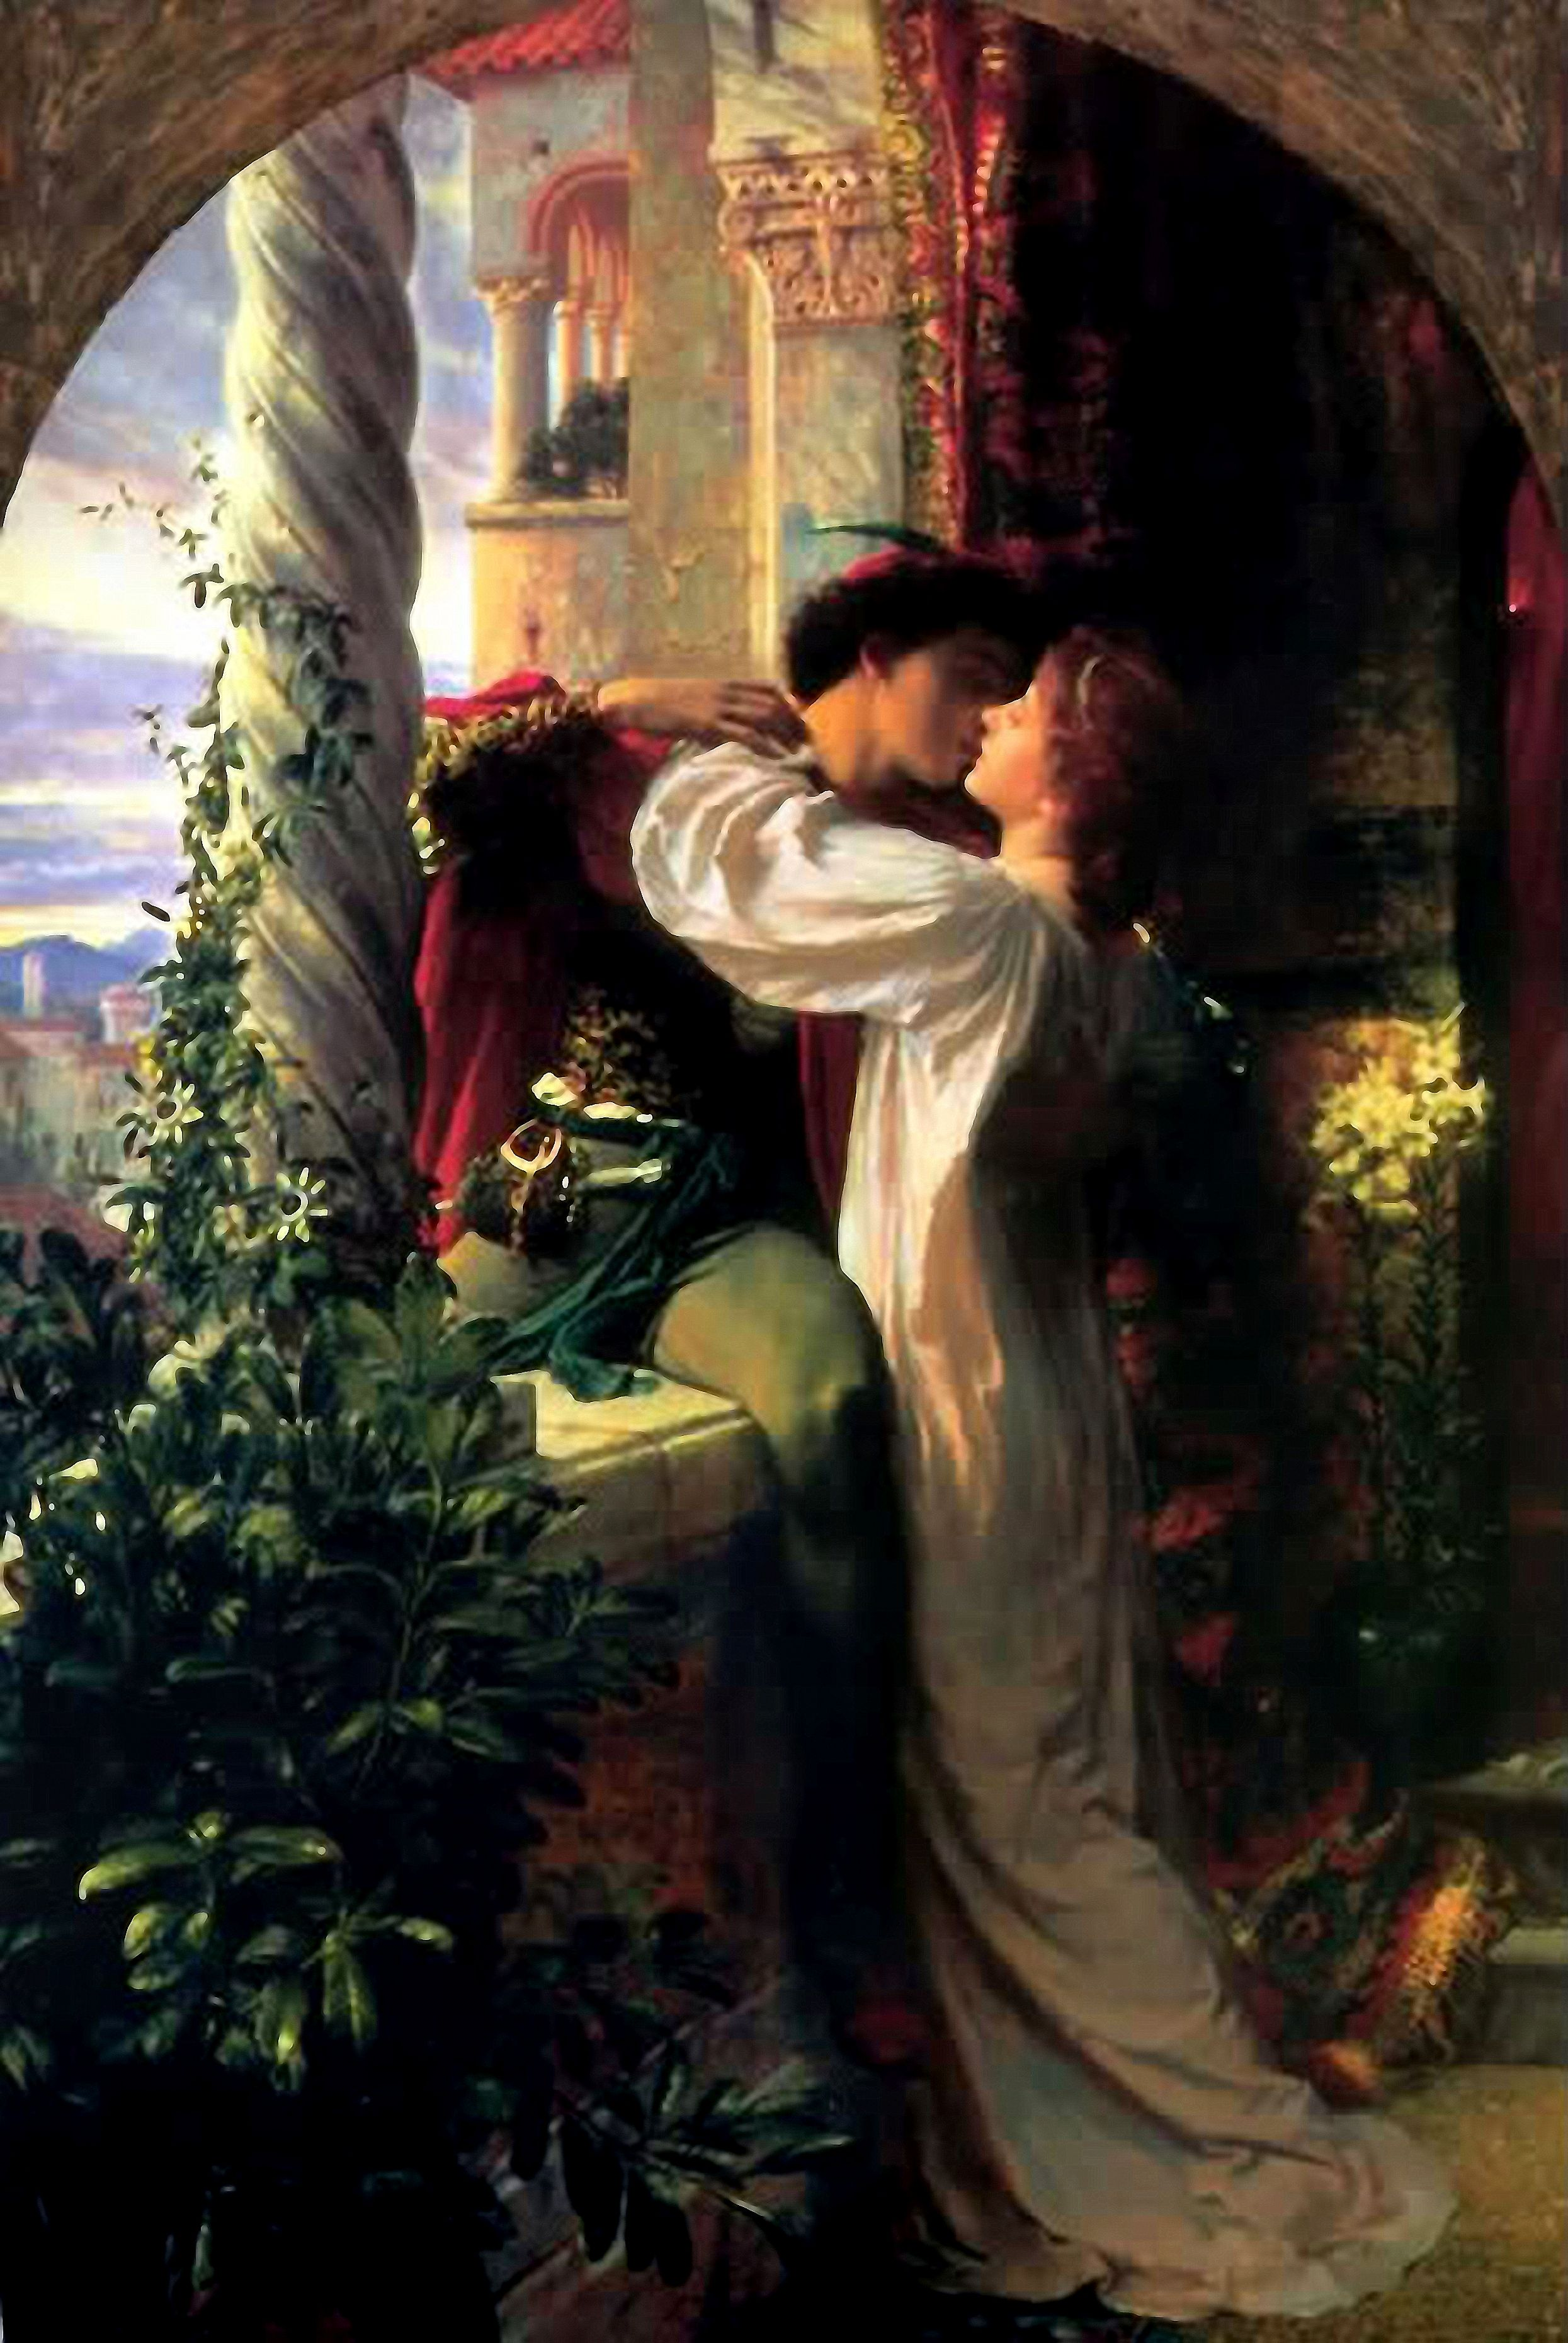 an analysis of romeo and juliet as one of the most famous love stories Romeo and juliet is one of the most penetrating love stories ever written , and no other love story will  one of the most famous plays written.